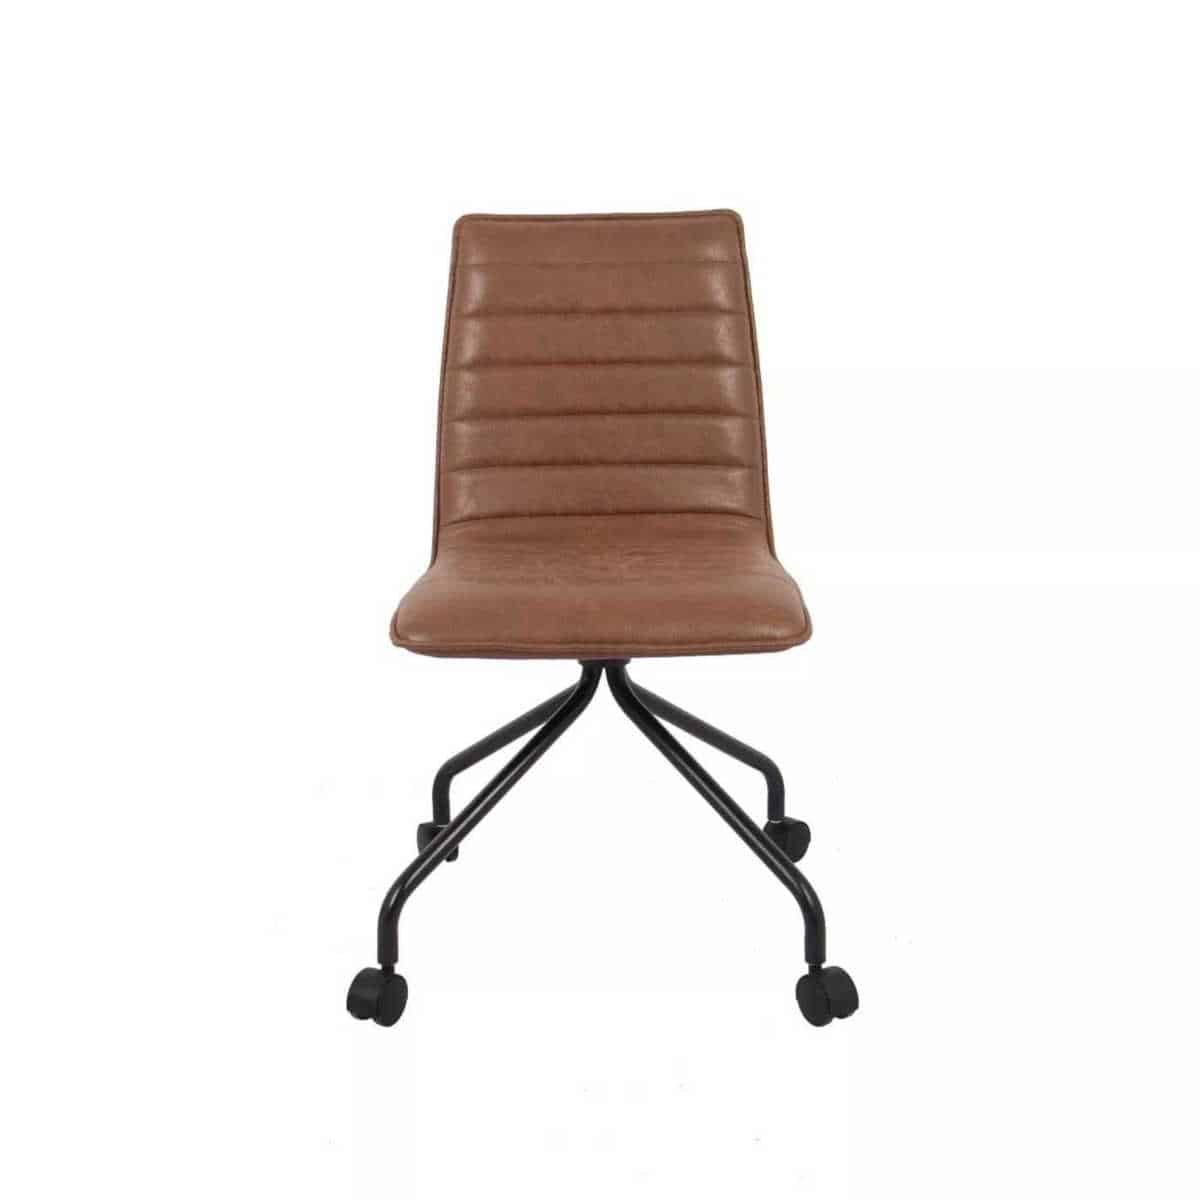 A brown leather-look swivel desk chair with black metal legs.